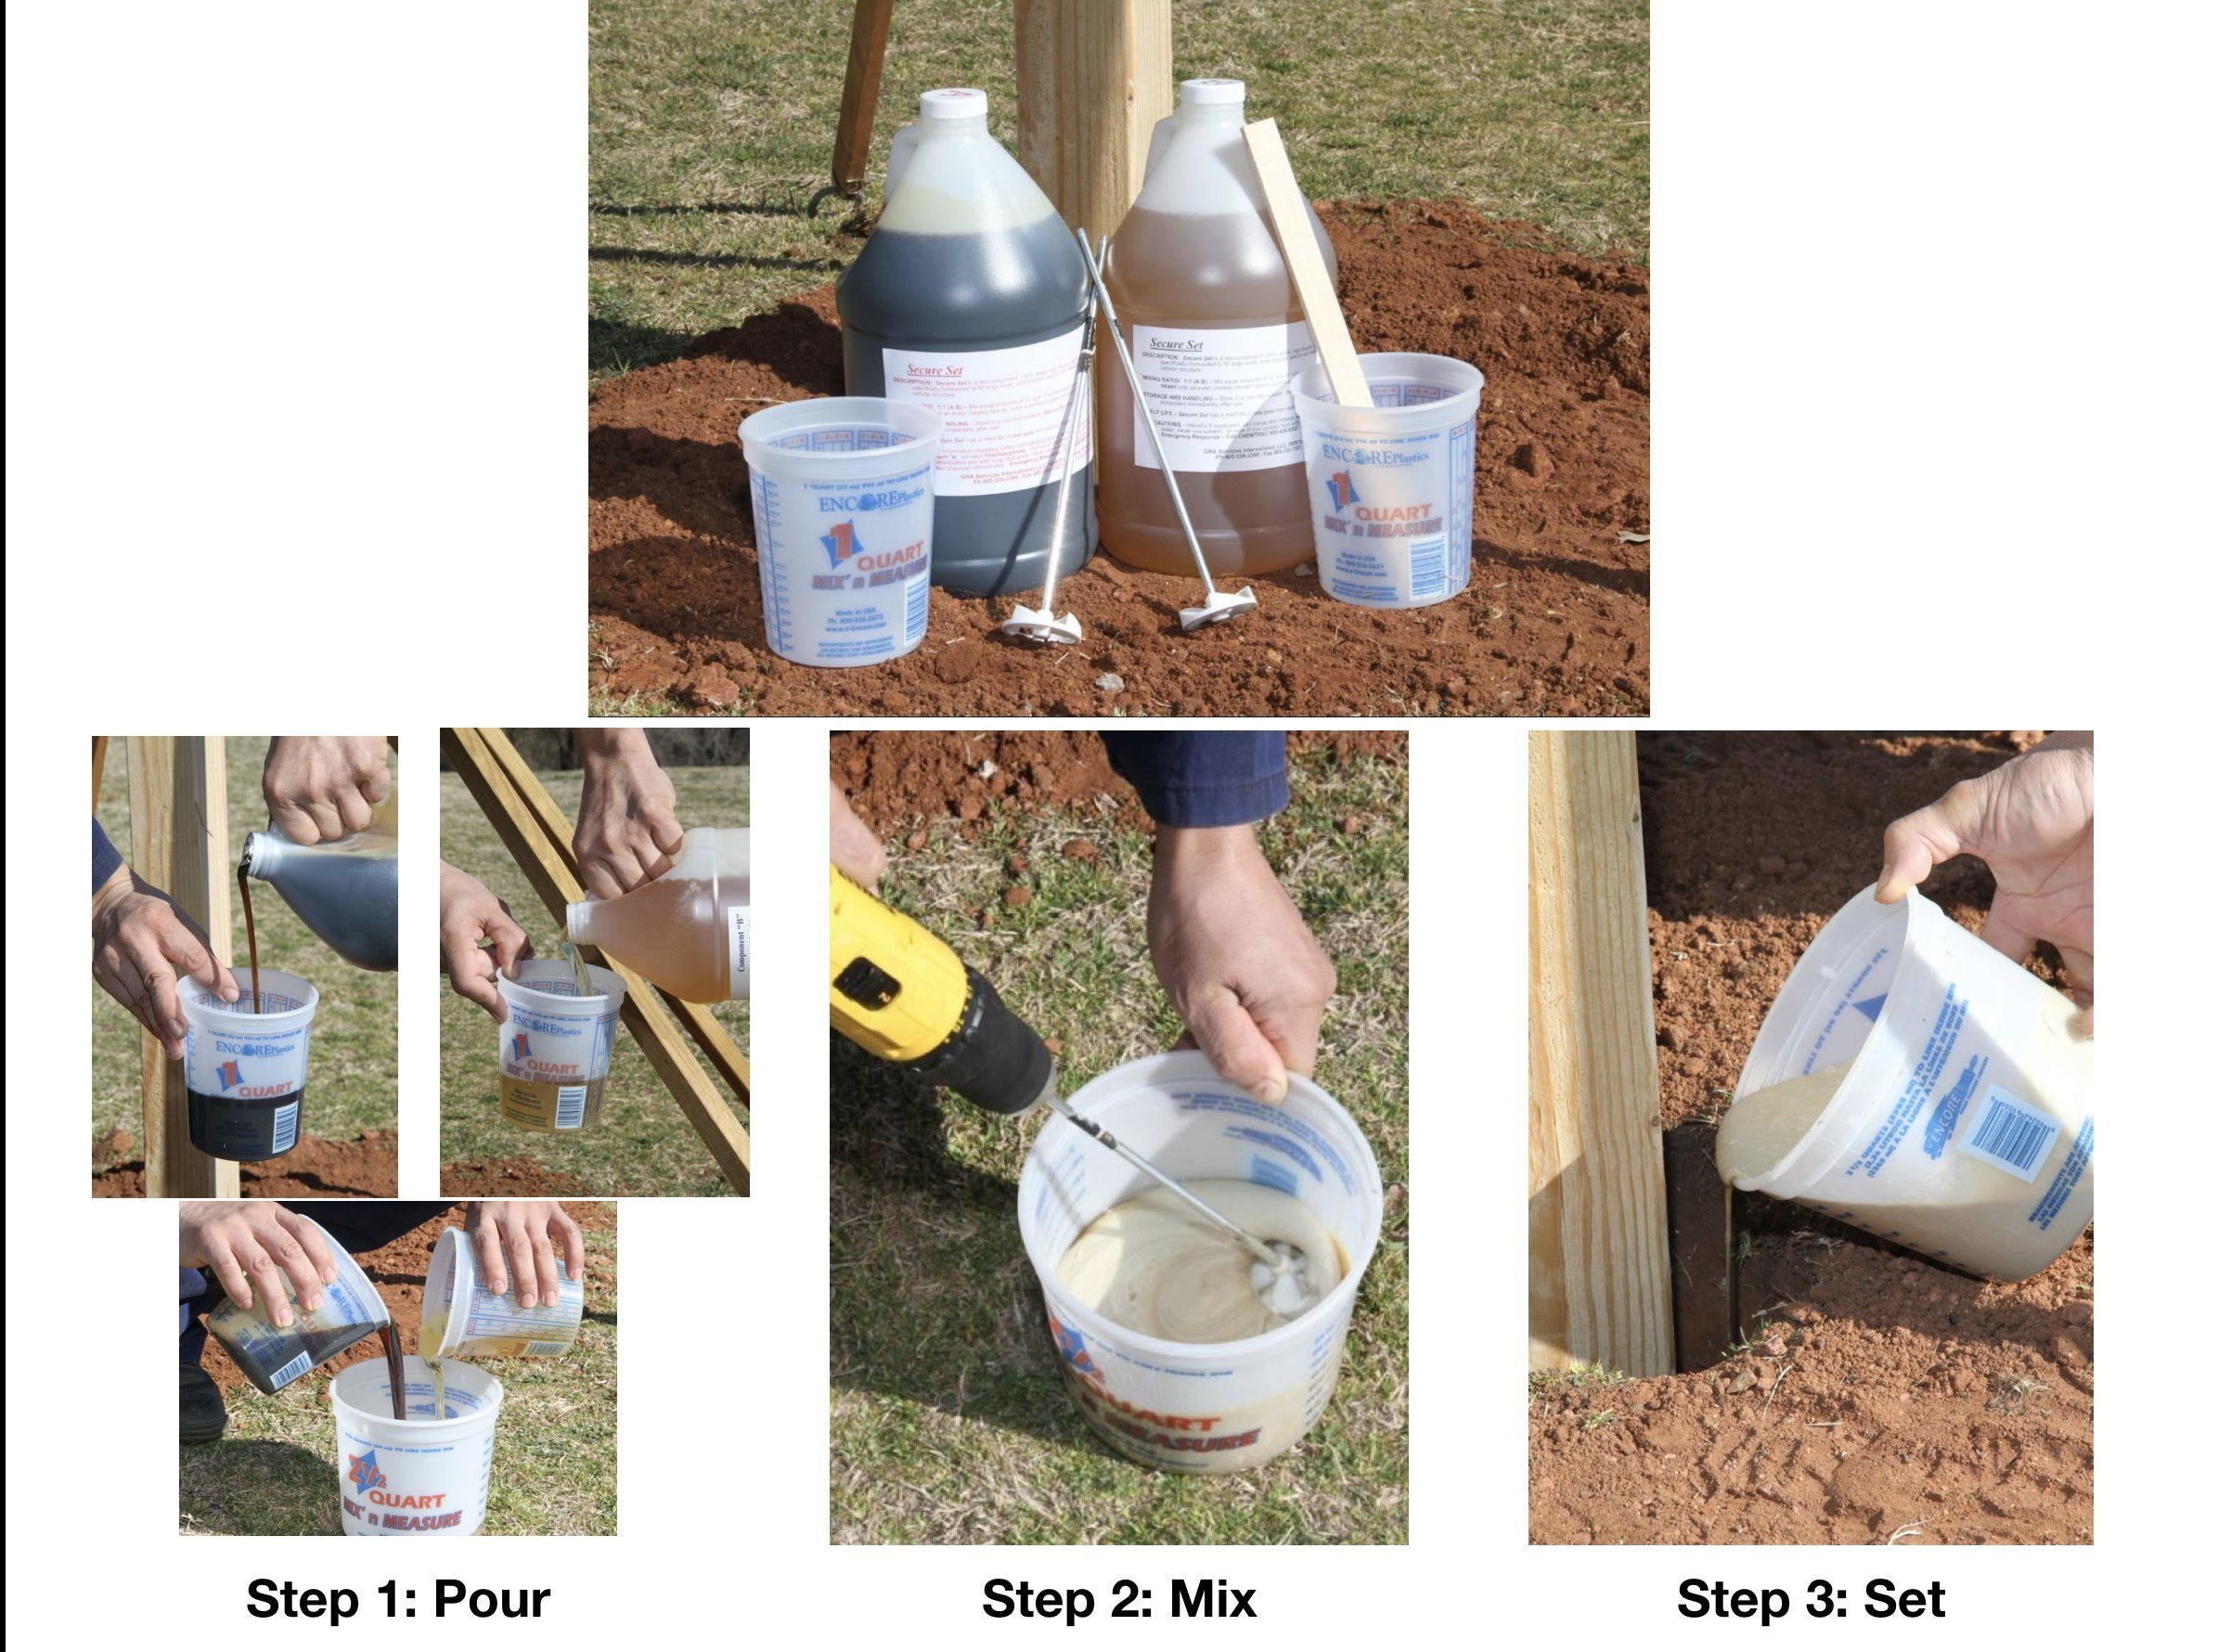 Secure Set - 10 Post Kit - Commercial Grade -2 Gallons. Fast, Secure & Safe Concrete Alternative for Easy Fence Post Installation. by Secure Set (Image #2)